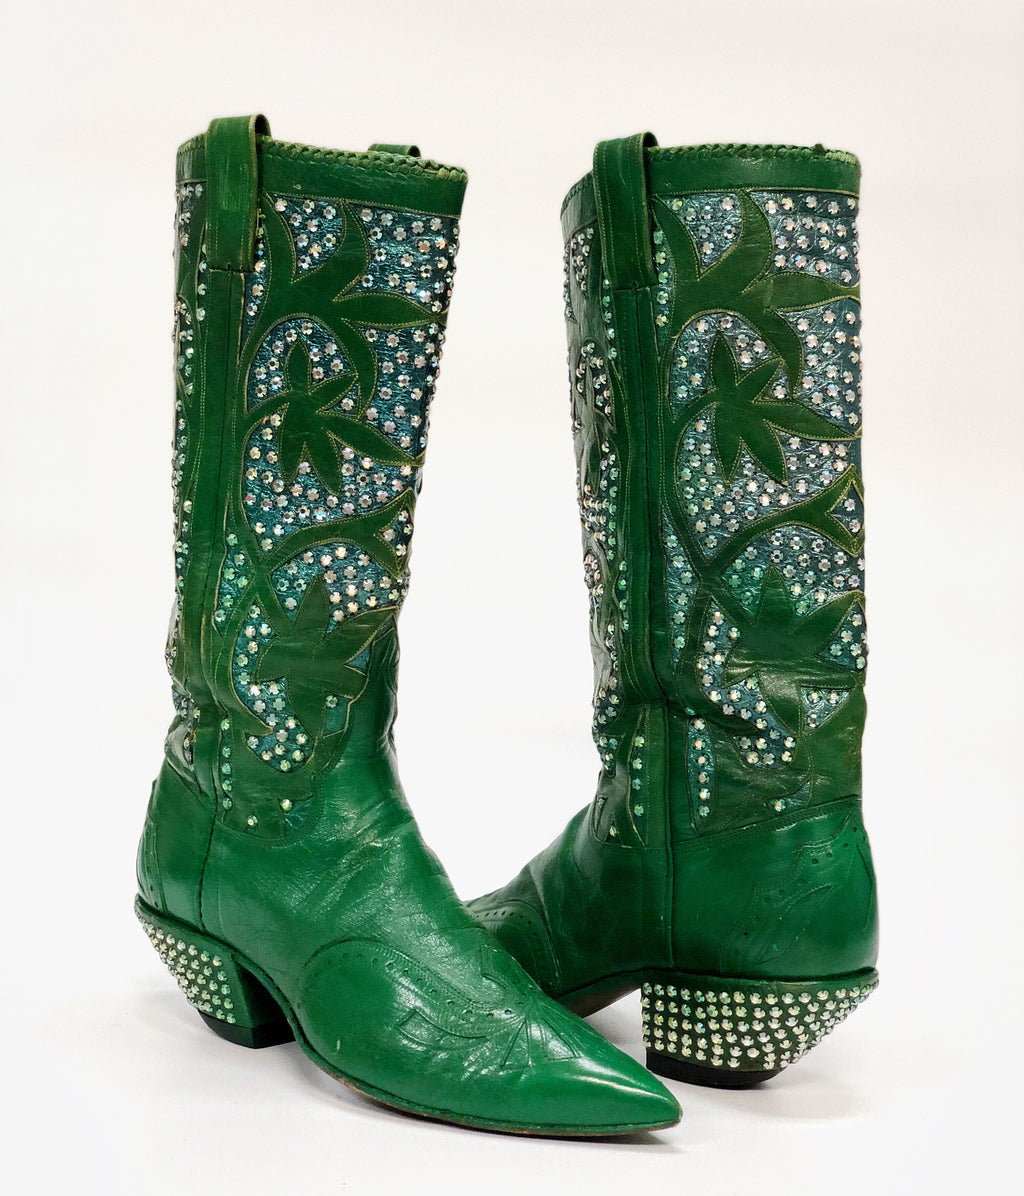 Nudie's Rodeo Tailor Rhinestone Cowboy Boots